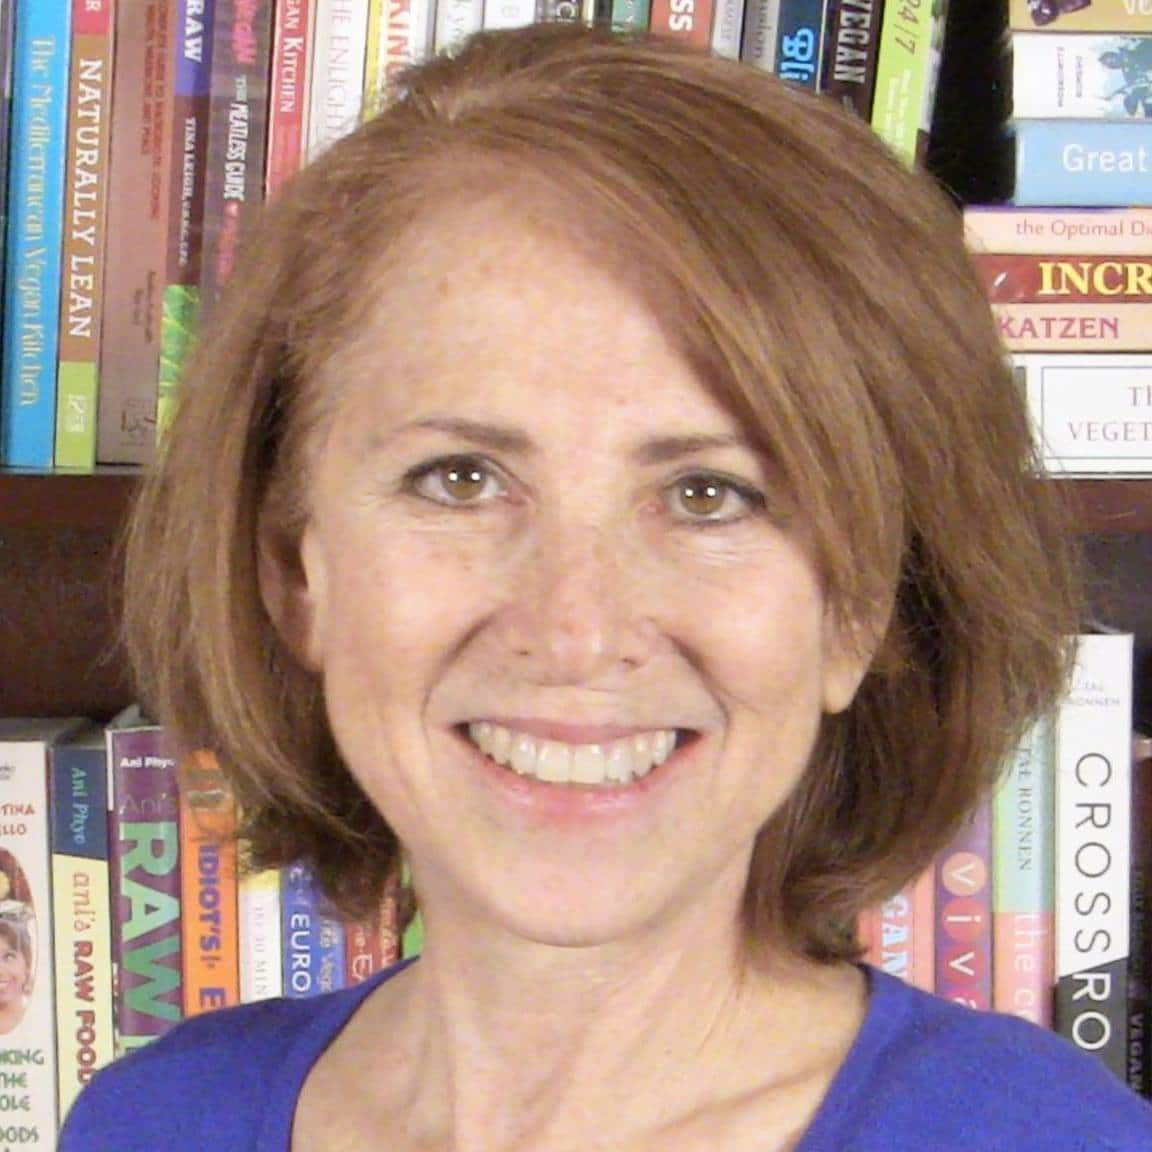 caryn-hartglass-with-books.jpg